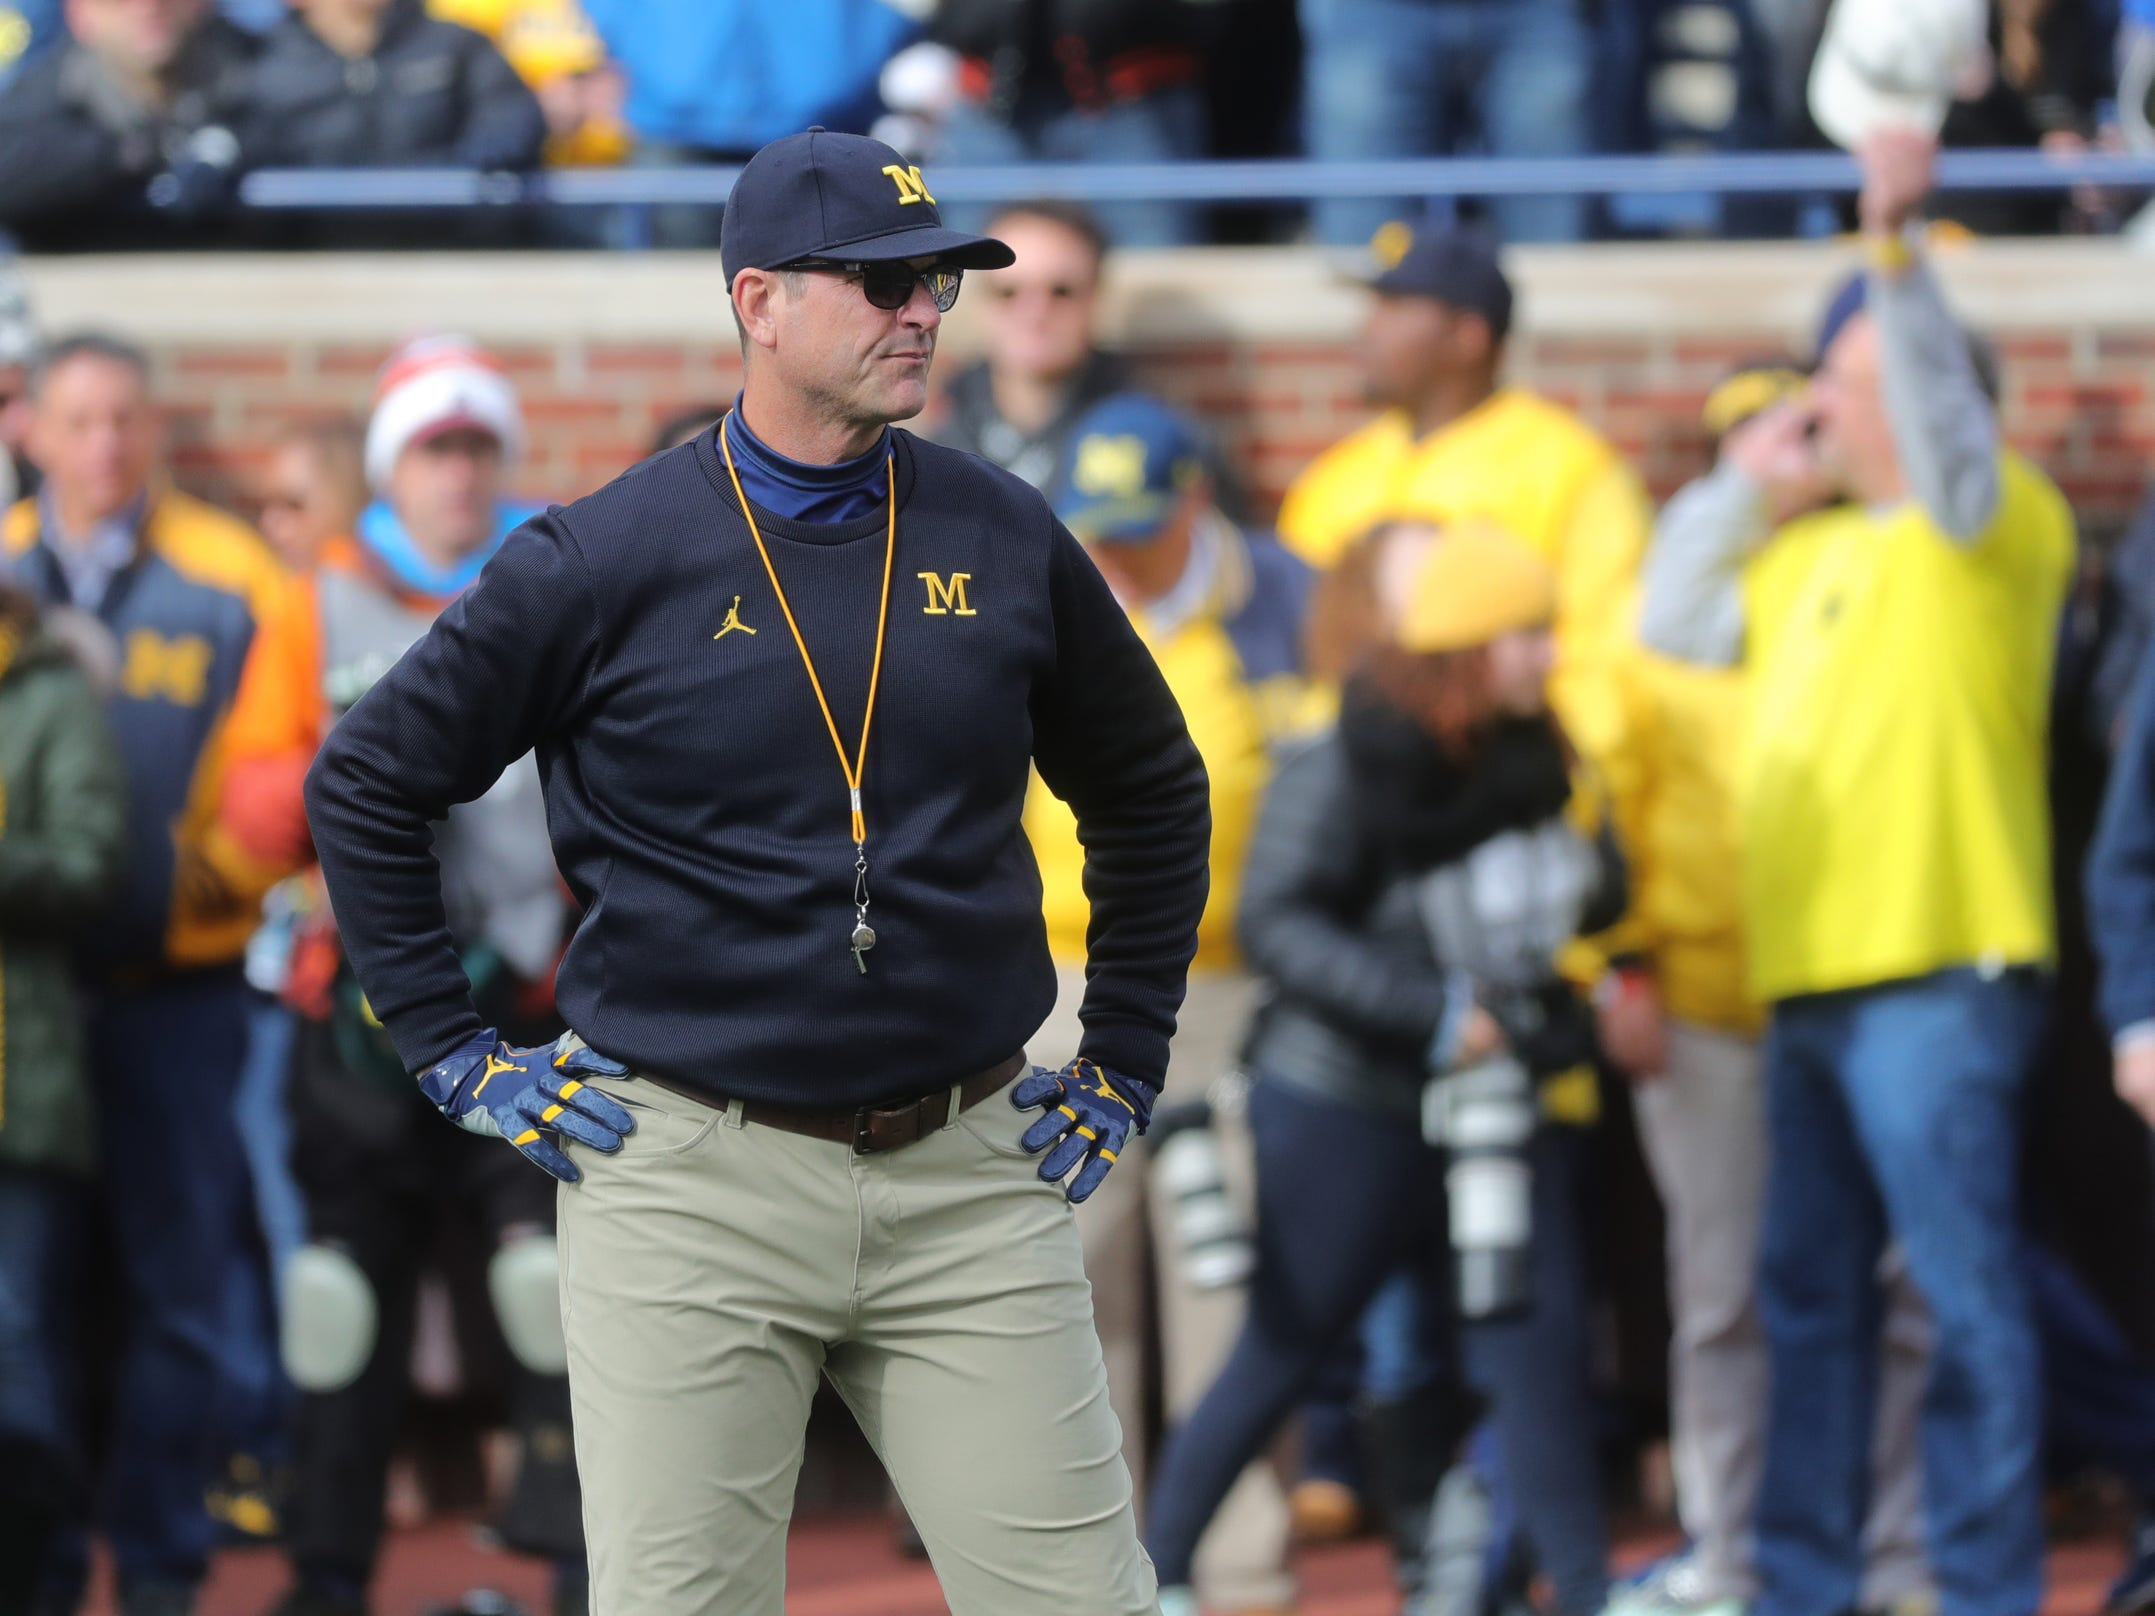 Michigan coach Jim Harbaugh watches his team warm up prior to the game against Penn State on Saturday, Nov. 3, 2018, at Michigan Stadium.